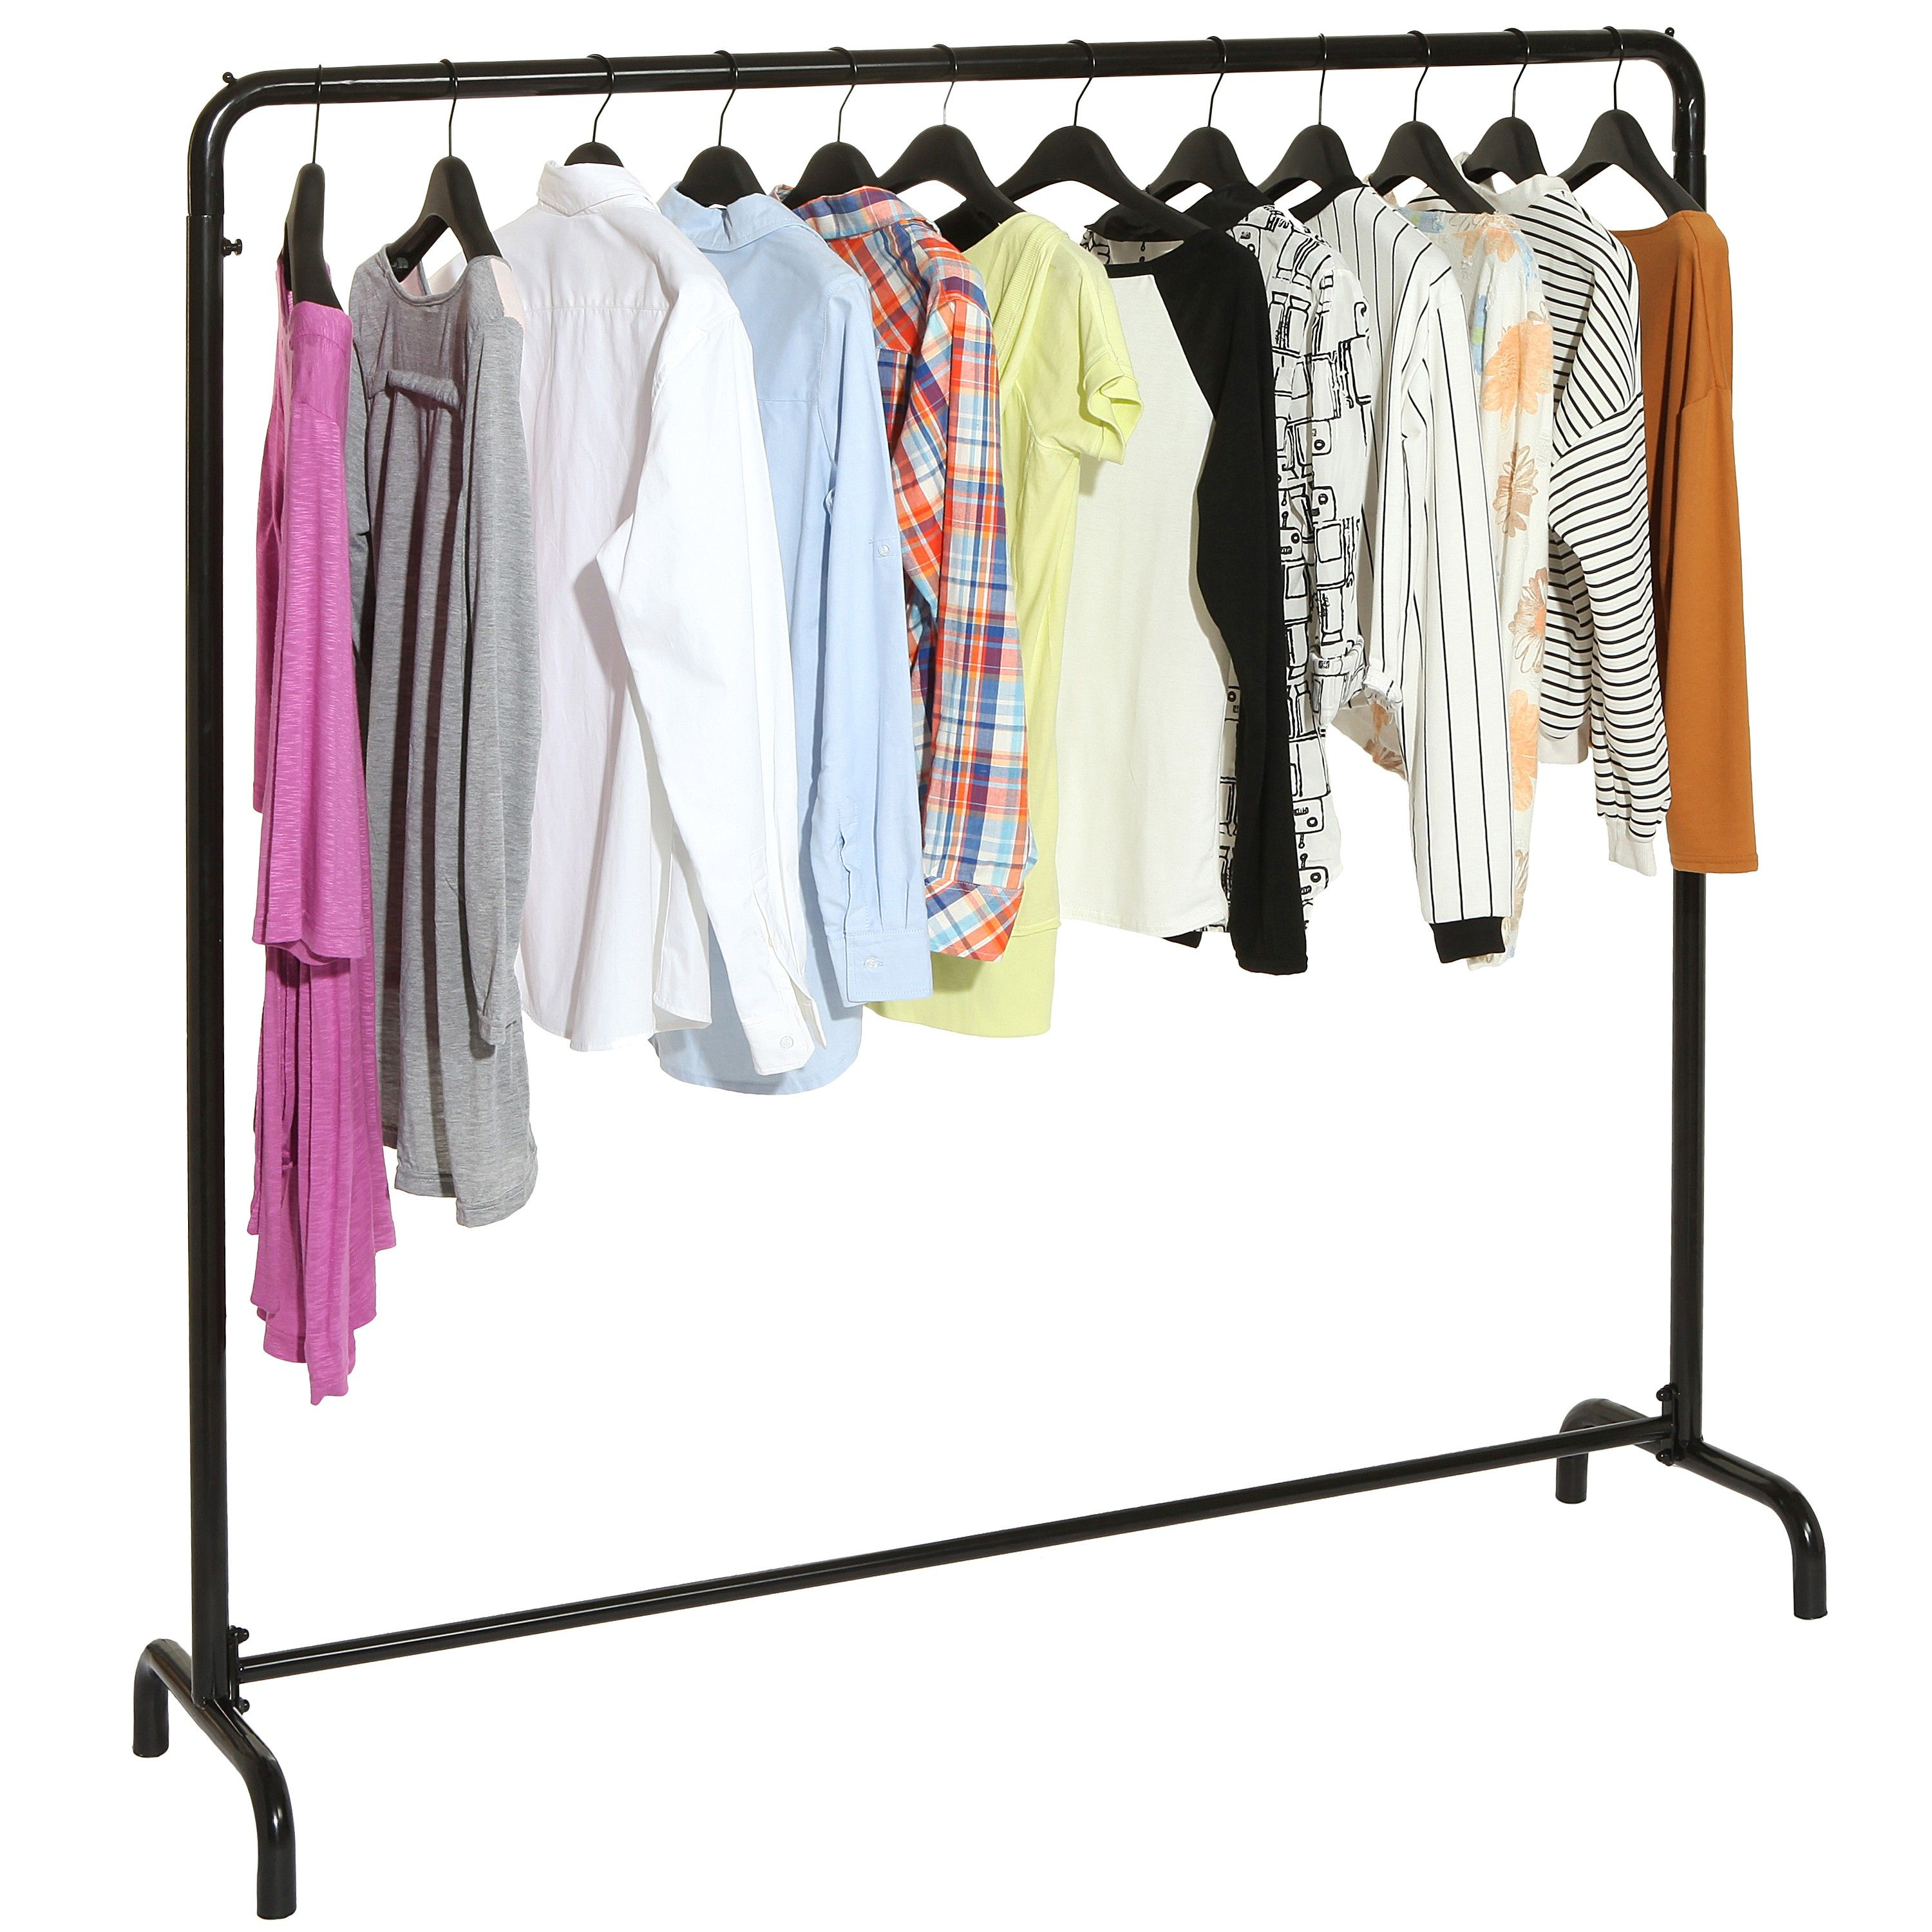 hanger racks nz holder free silver and clothes umbrella modern stand coat standing wavy rack with black hayneedle